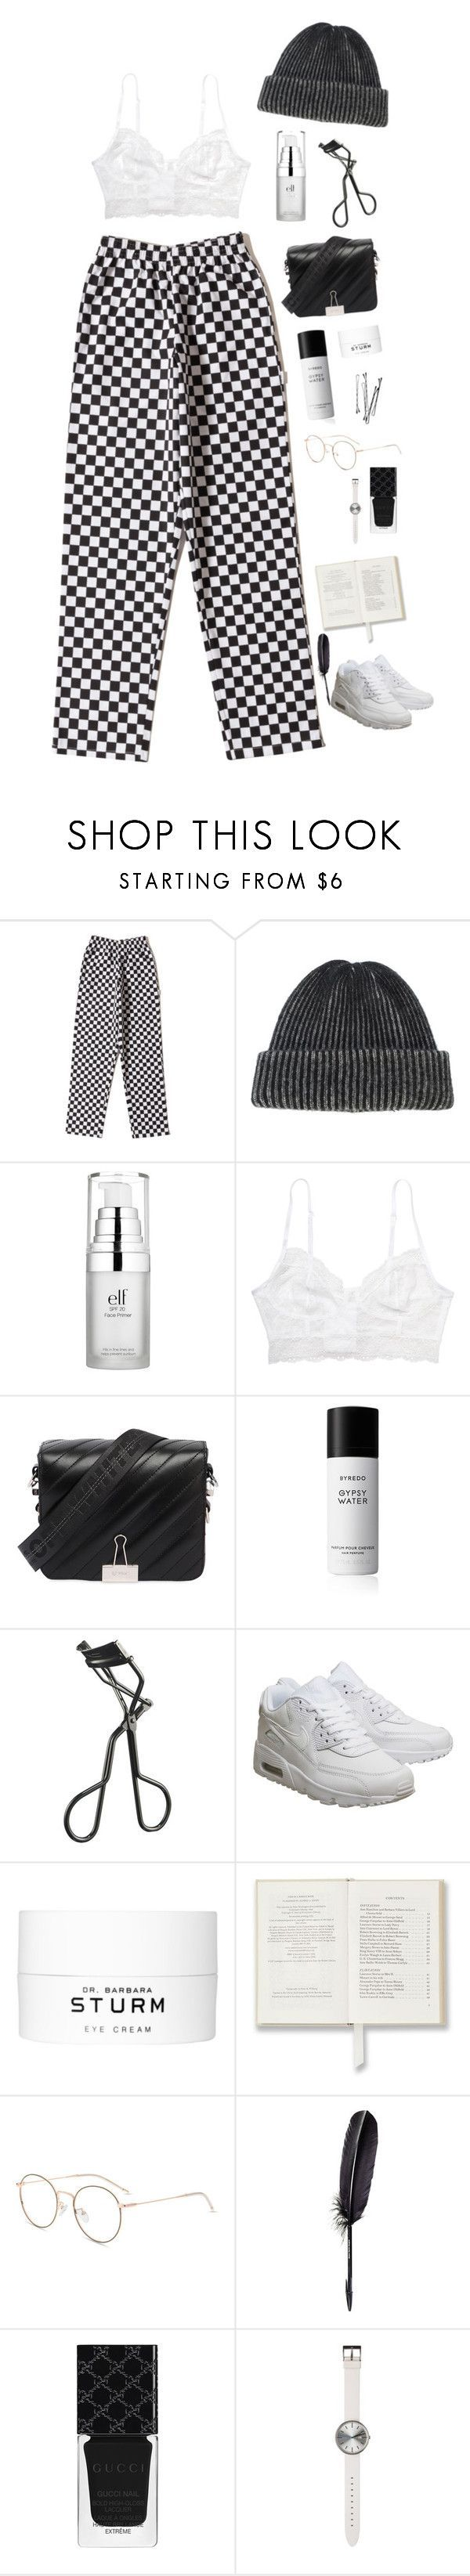 """Run"" by mode-222 ❤ liked on Polyvore featuring The Elder Statesman, Monki, Off-White, Byredo, MAC Cosmetics, NIKE, Maison Margiela, Gucci and Uniform Wares"